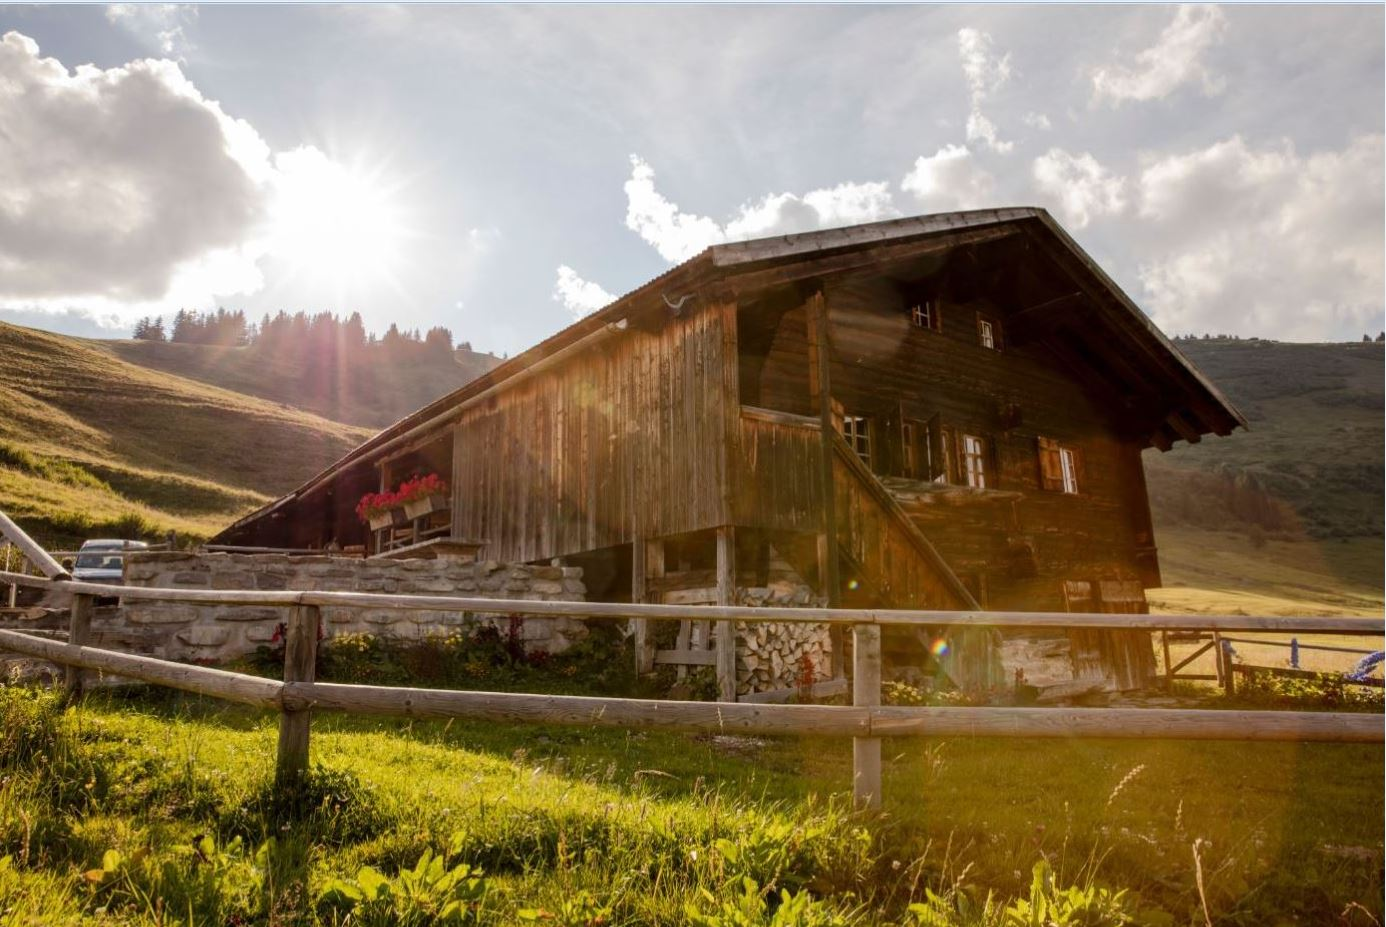 This 200-year-old Swiss alpine hut should be on your bucket list